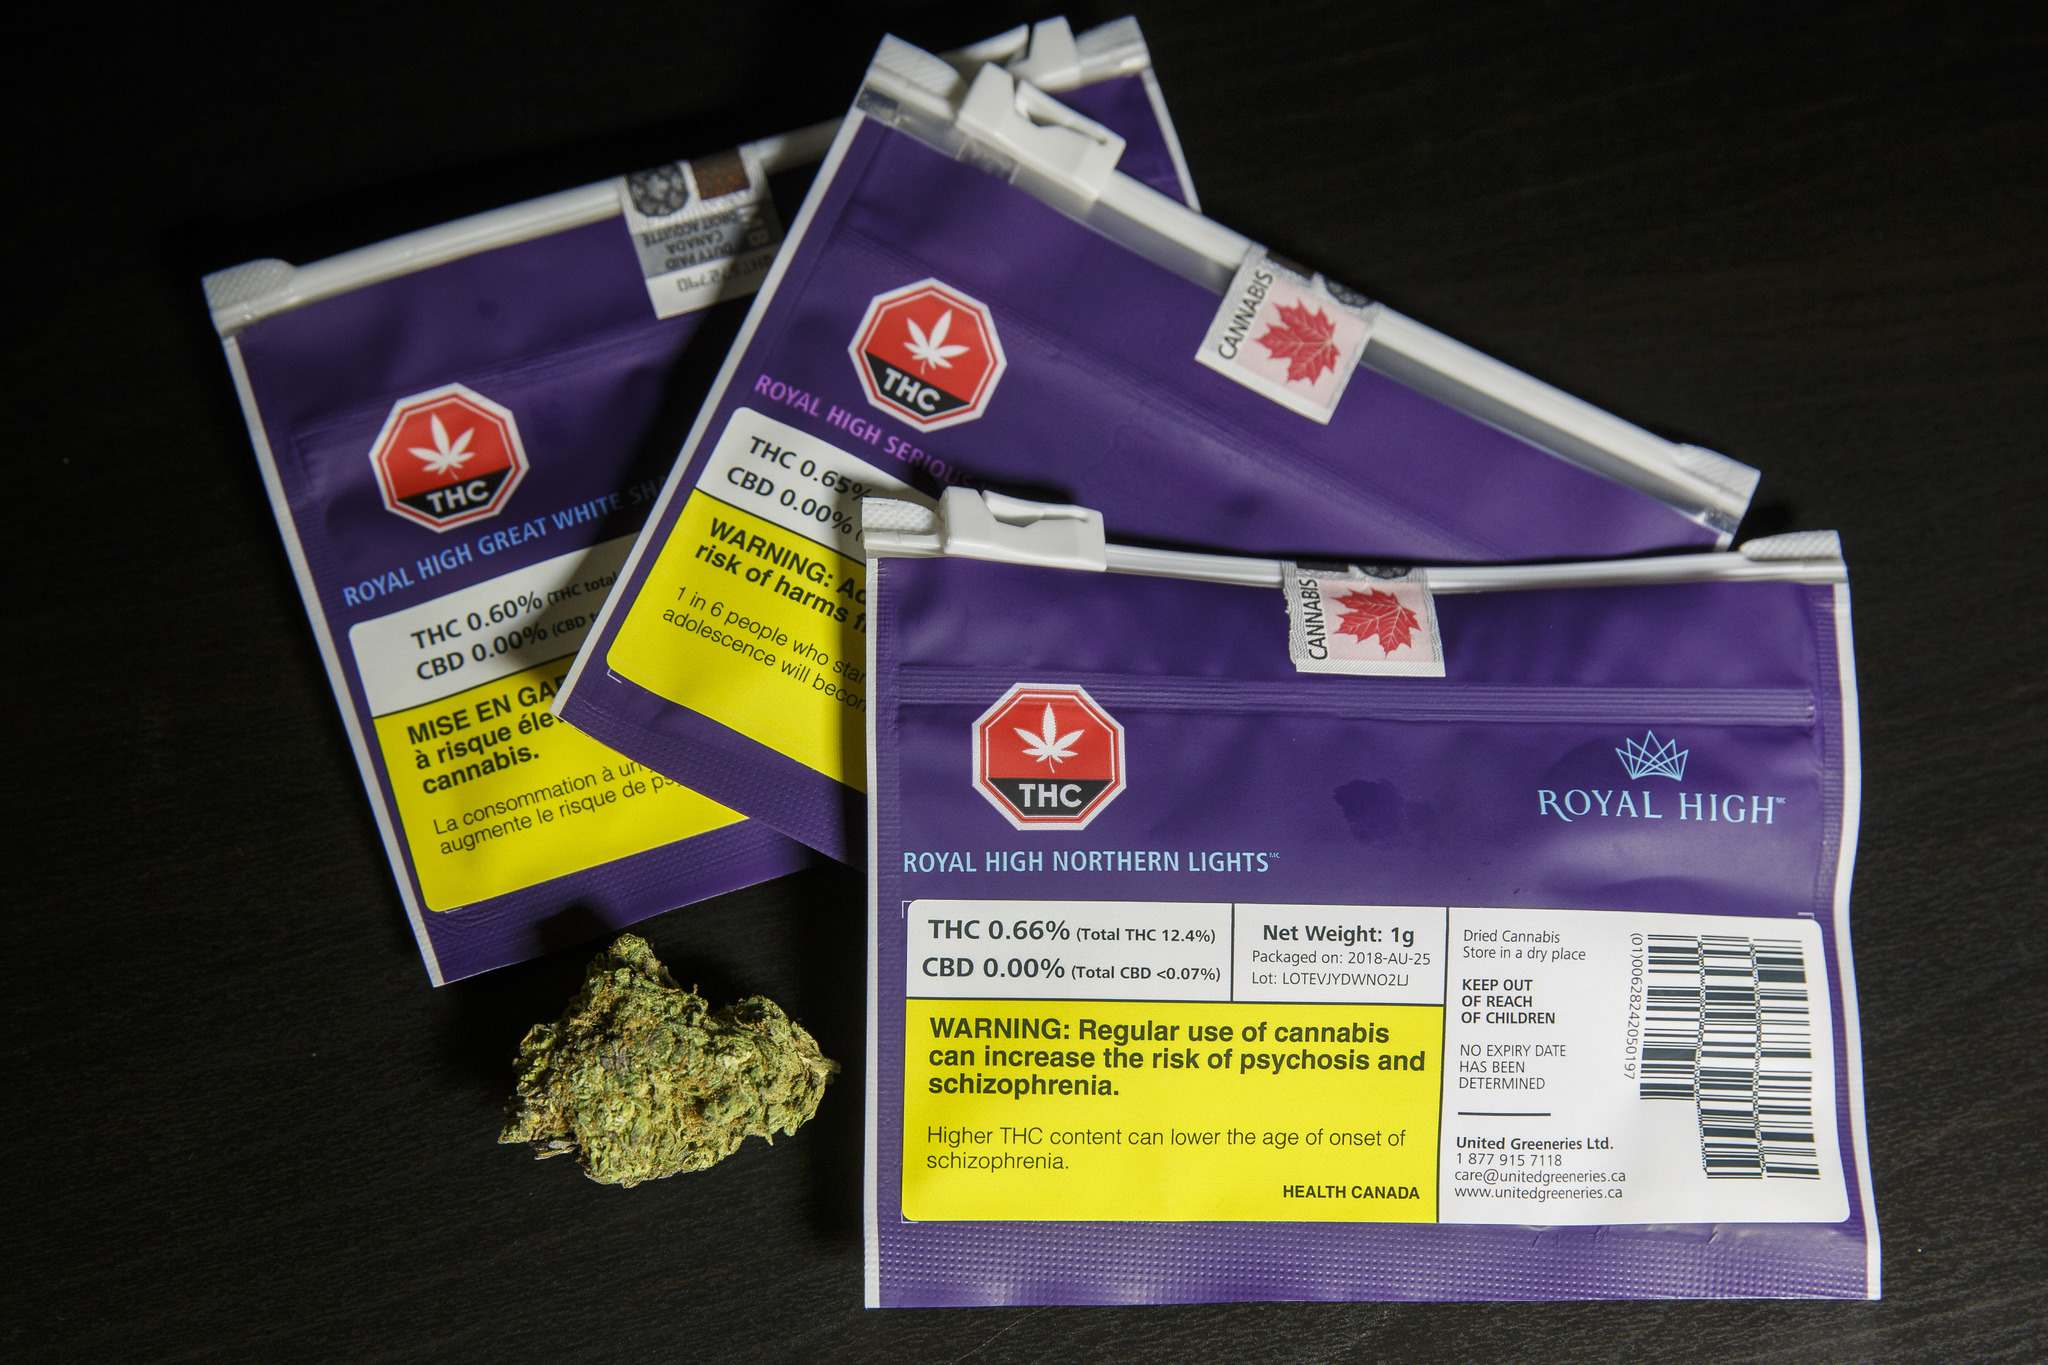 MIKE DEAL / WINNIPEG FREE PRESS FILES <p /></p></p><p>Government-regulated cannabis packaging in Canada must include a prominent health warning label.</p>